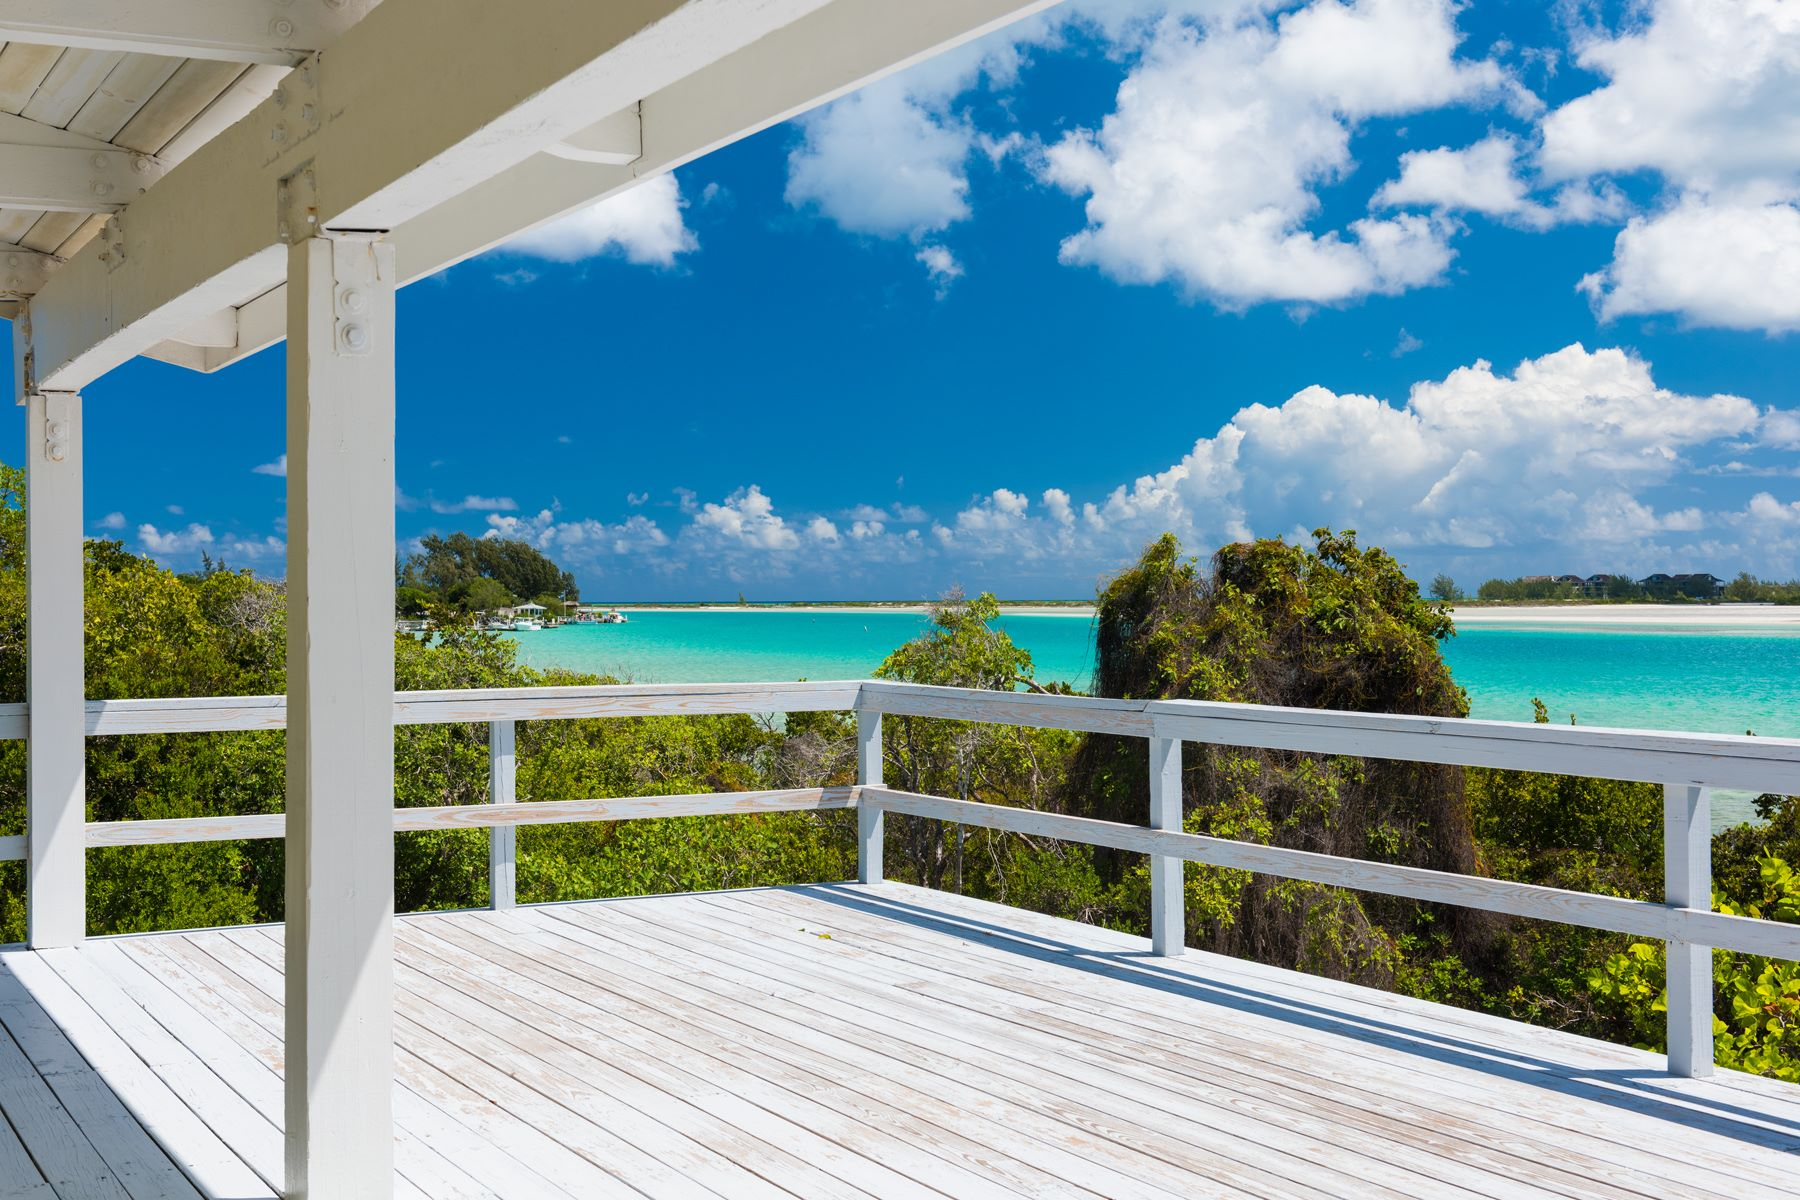 Single Family Home for Sale at Sandcastle on Pine Cay Channel Front Pine Cay, Pine Cay, TCI Turks And Caicos Islands